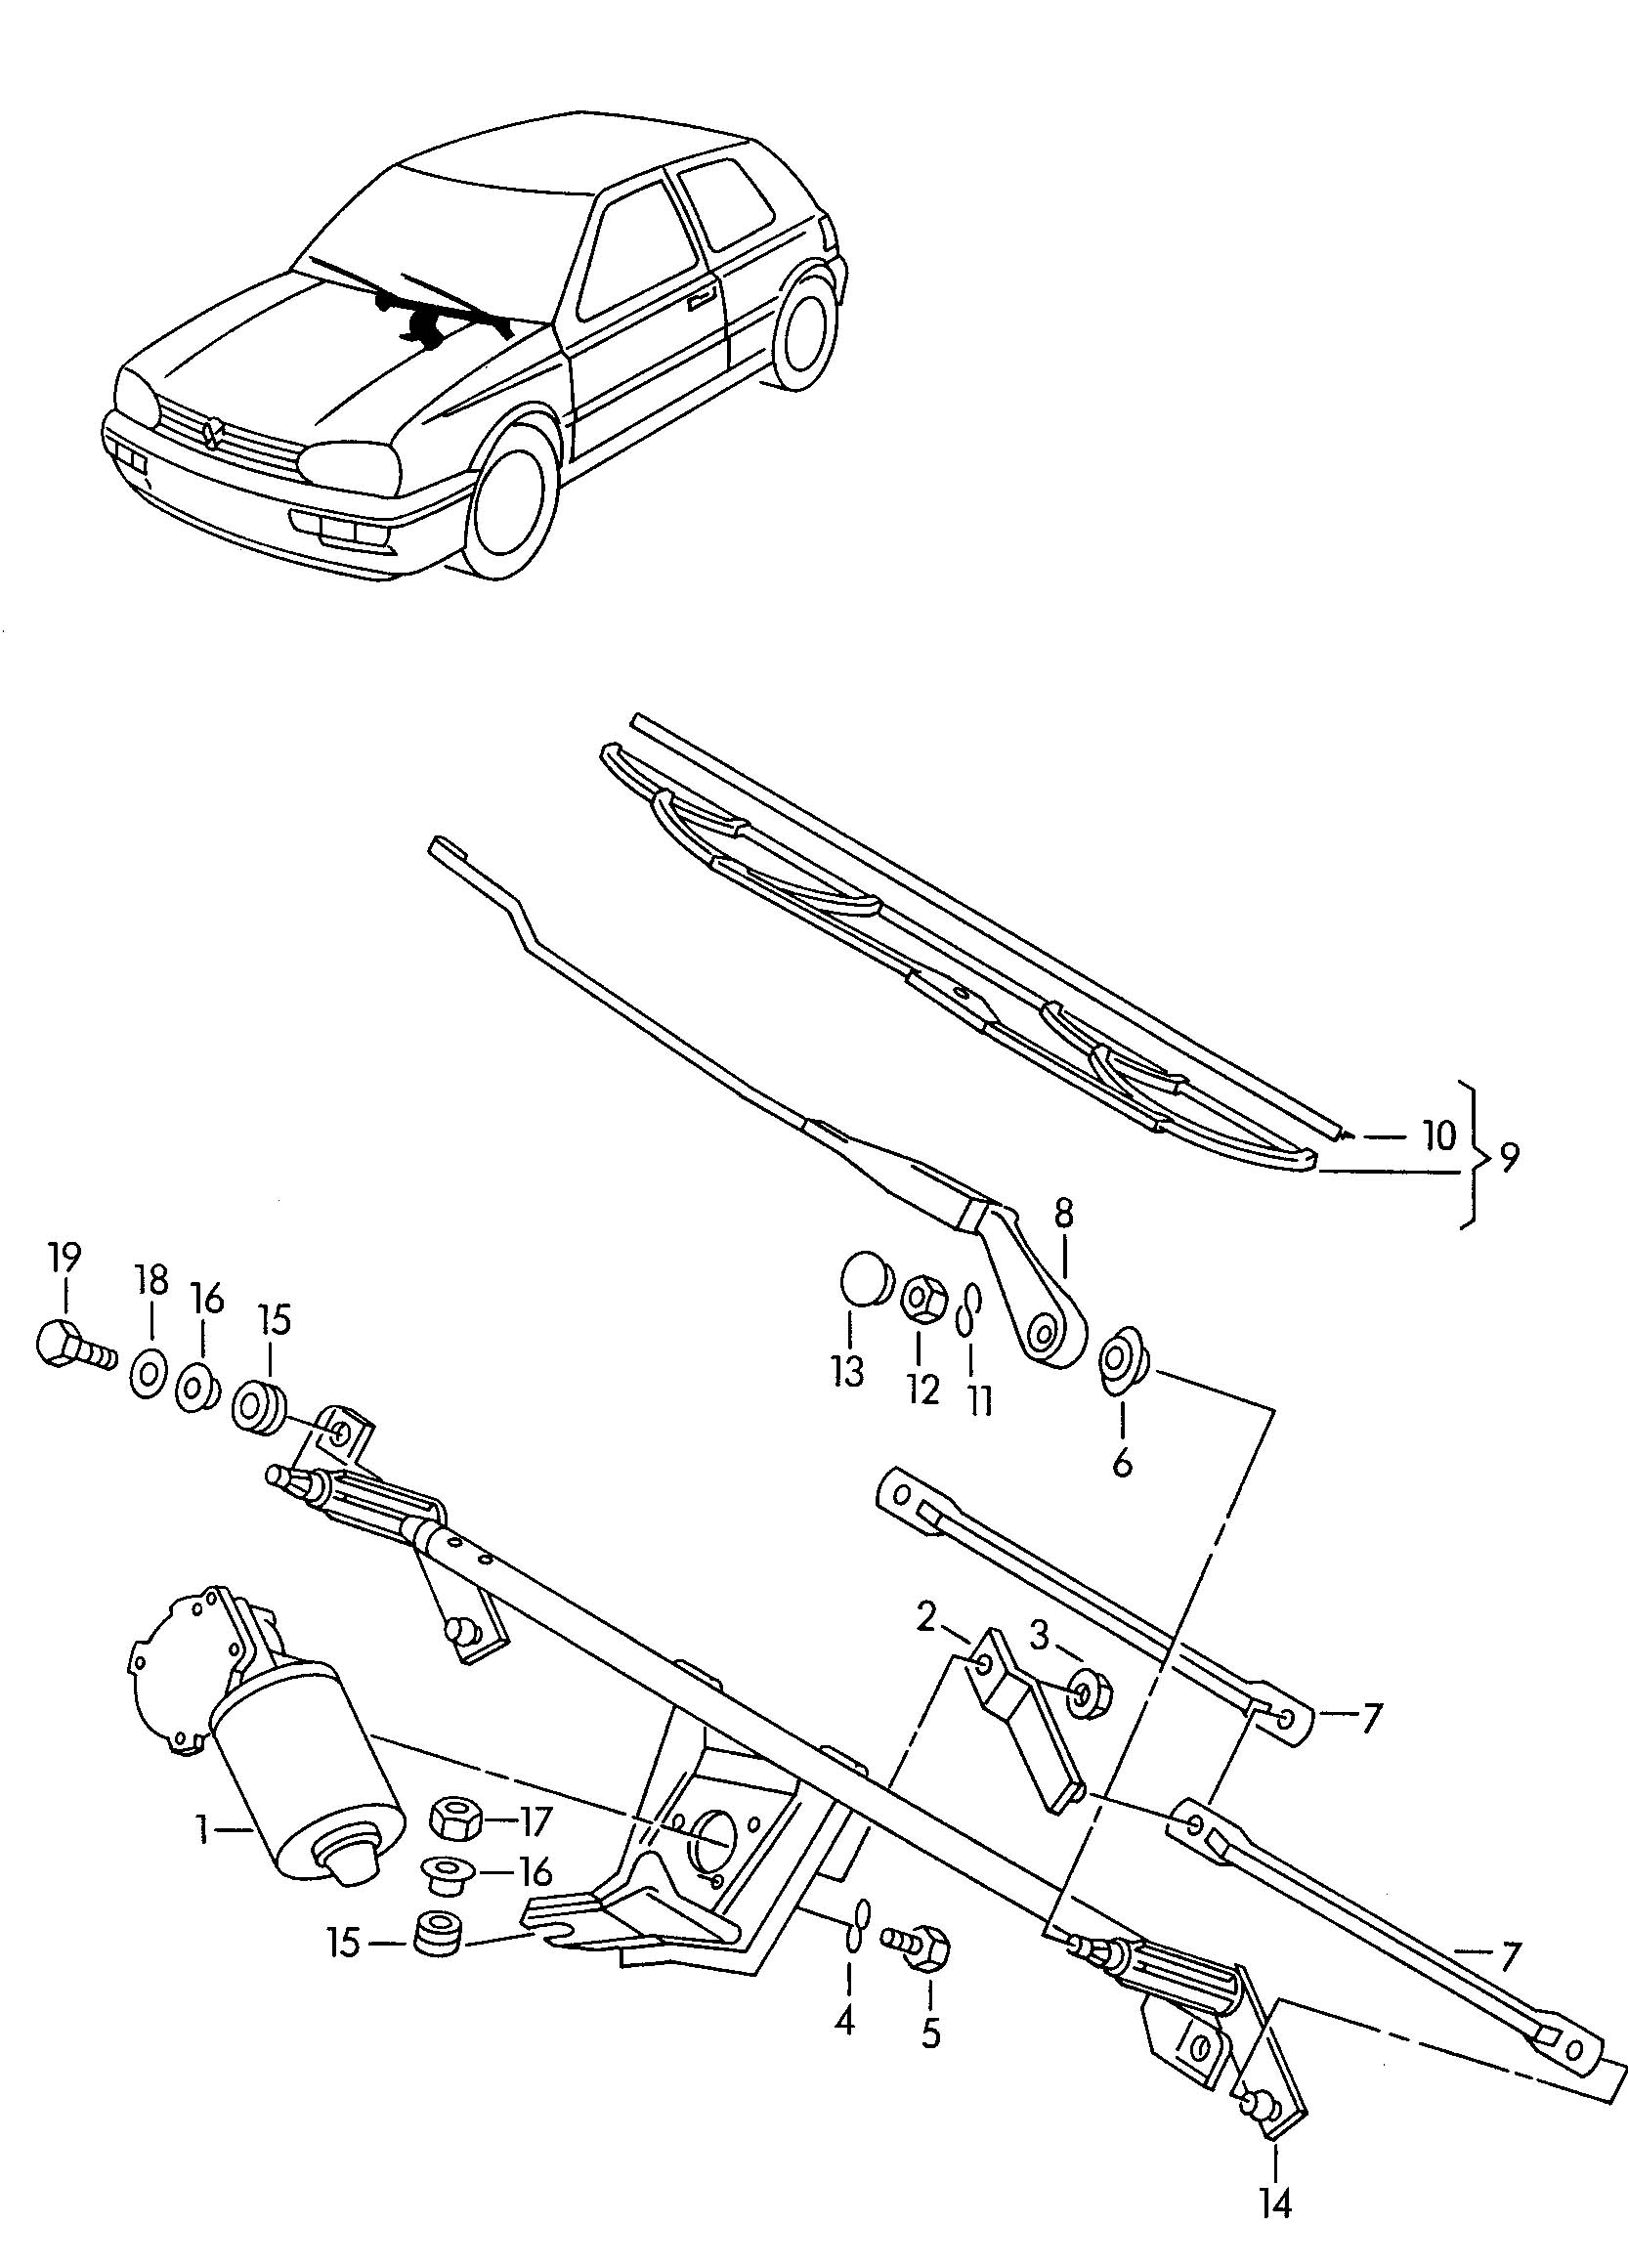 Service manual [How To Replace A 1998 Volkswagen Rio Wiper